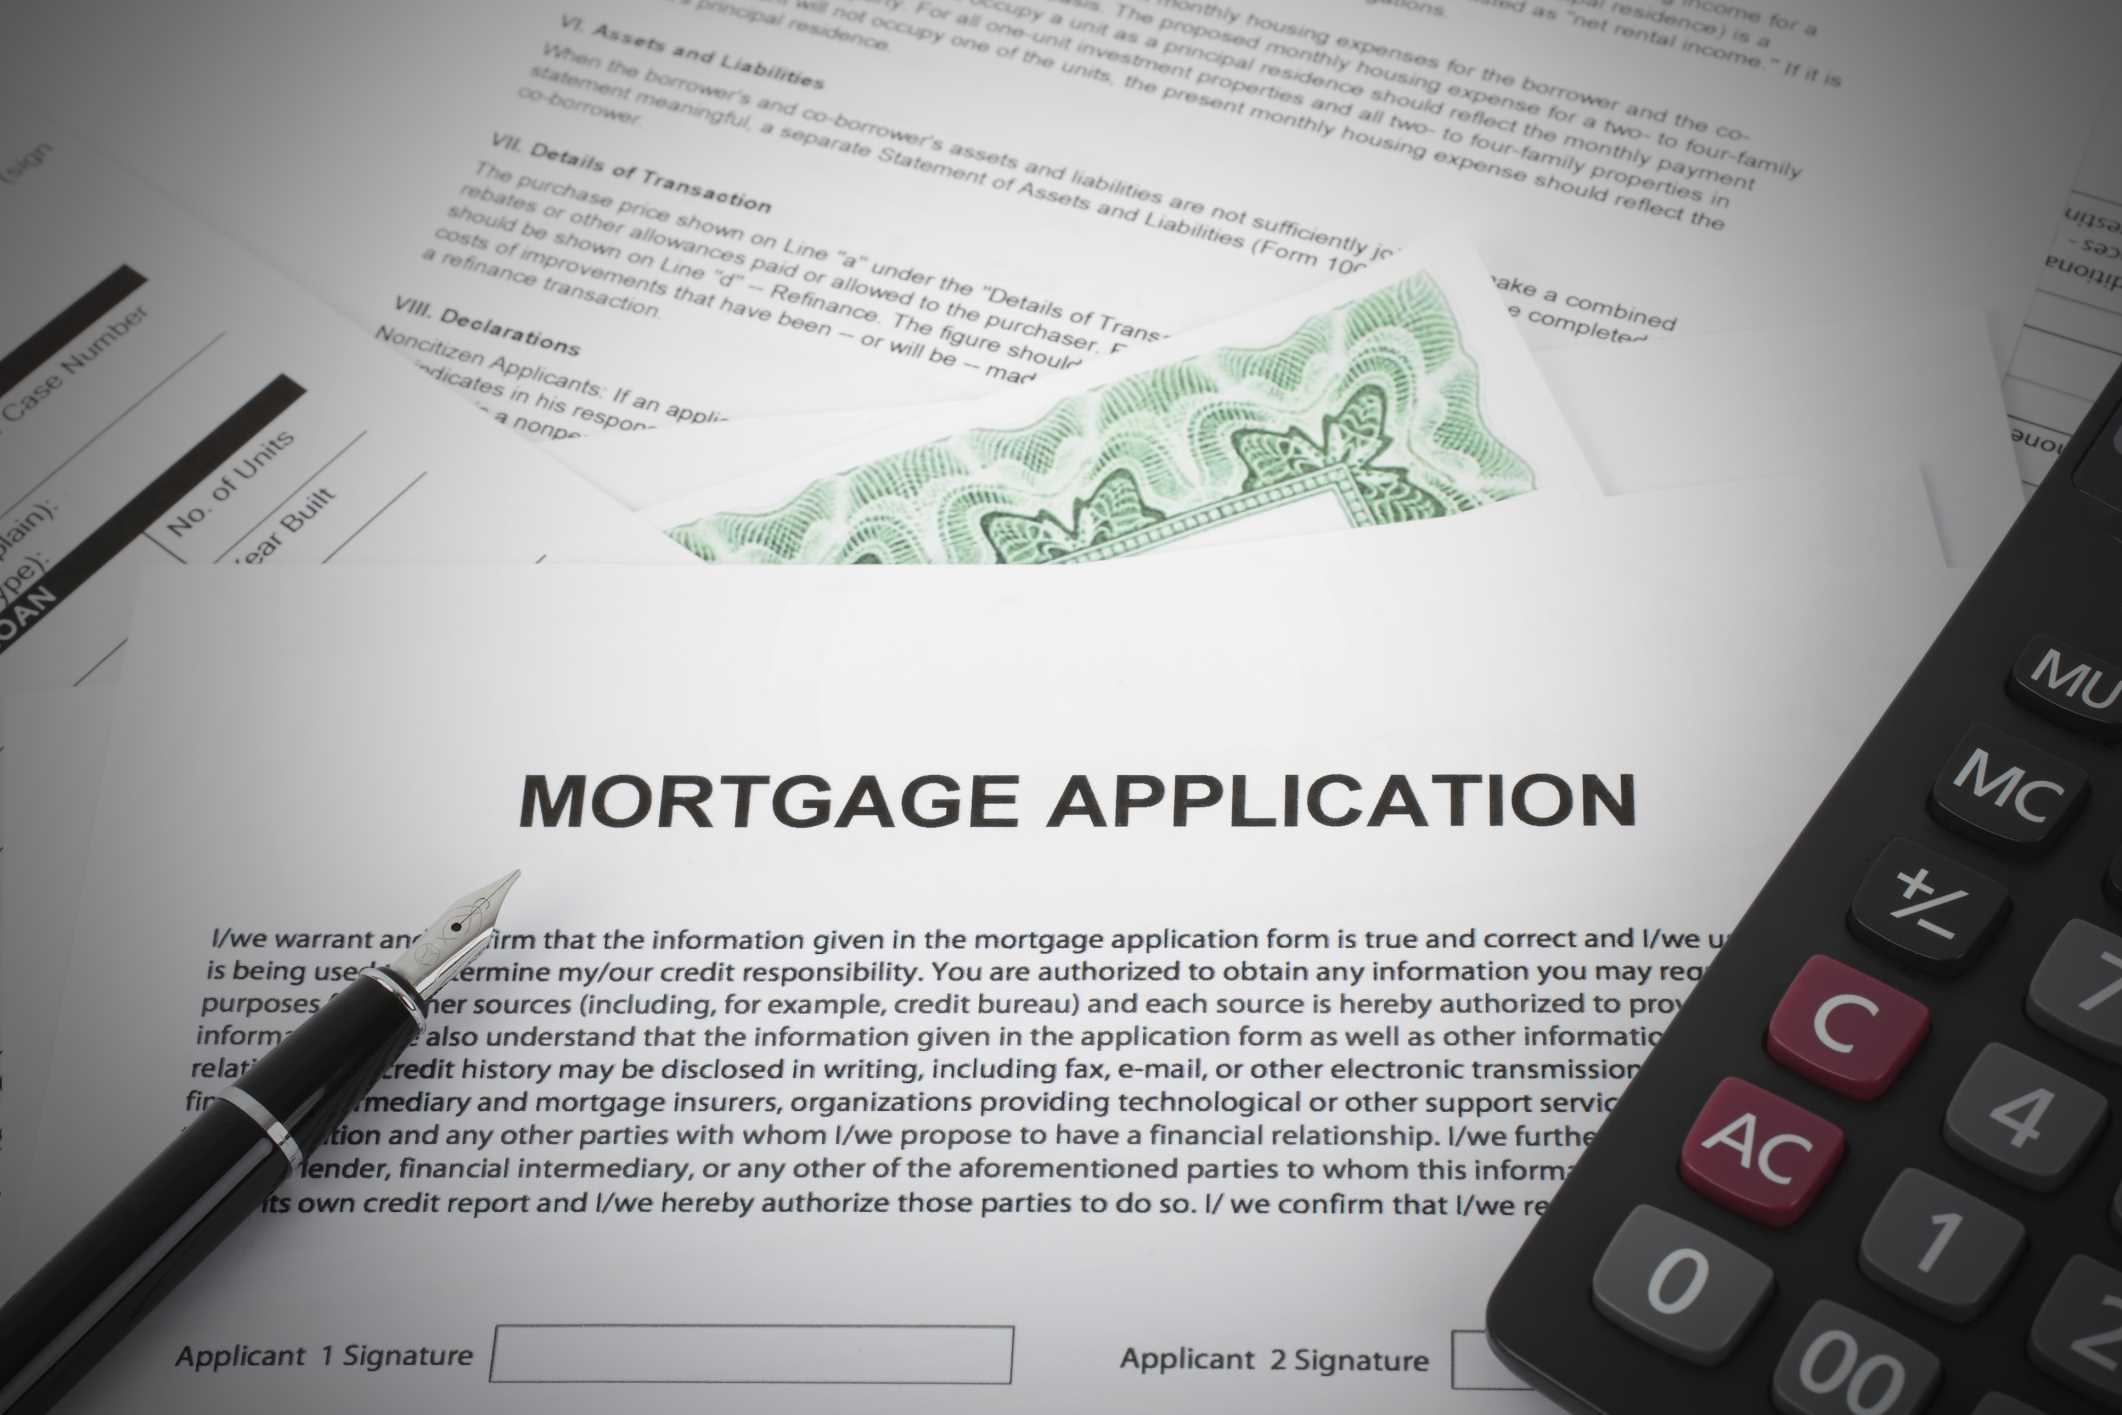 Applying to Mortgage Lenders: How Many Are Necessary